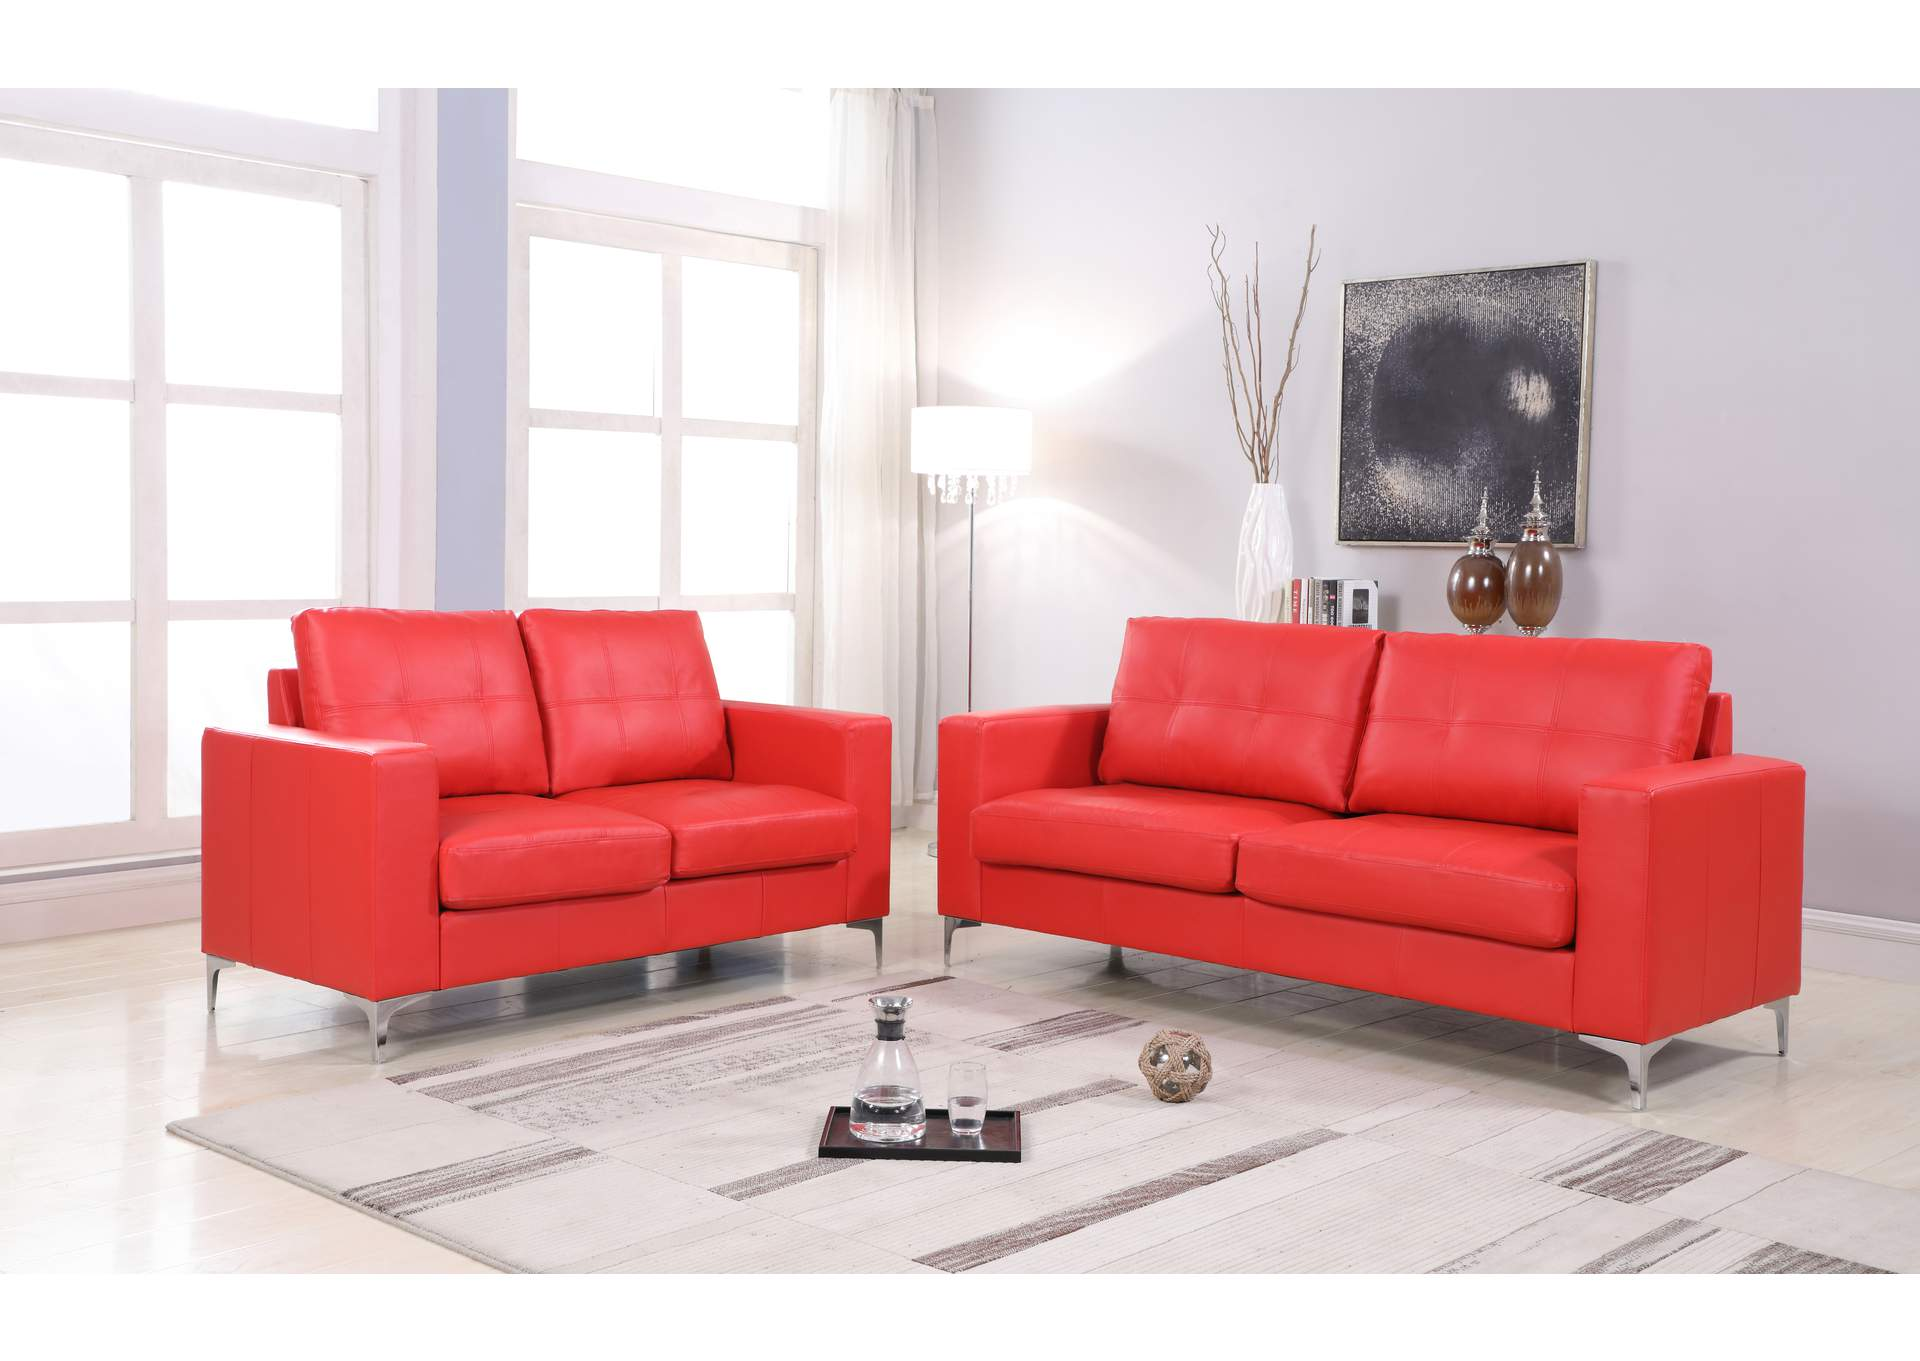 Red Contemporary Leather Loveseat (Red) With Chrome Leg,Global Trading